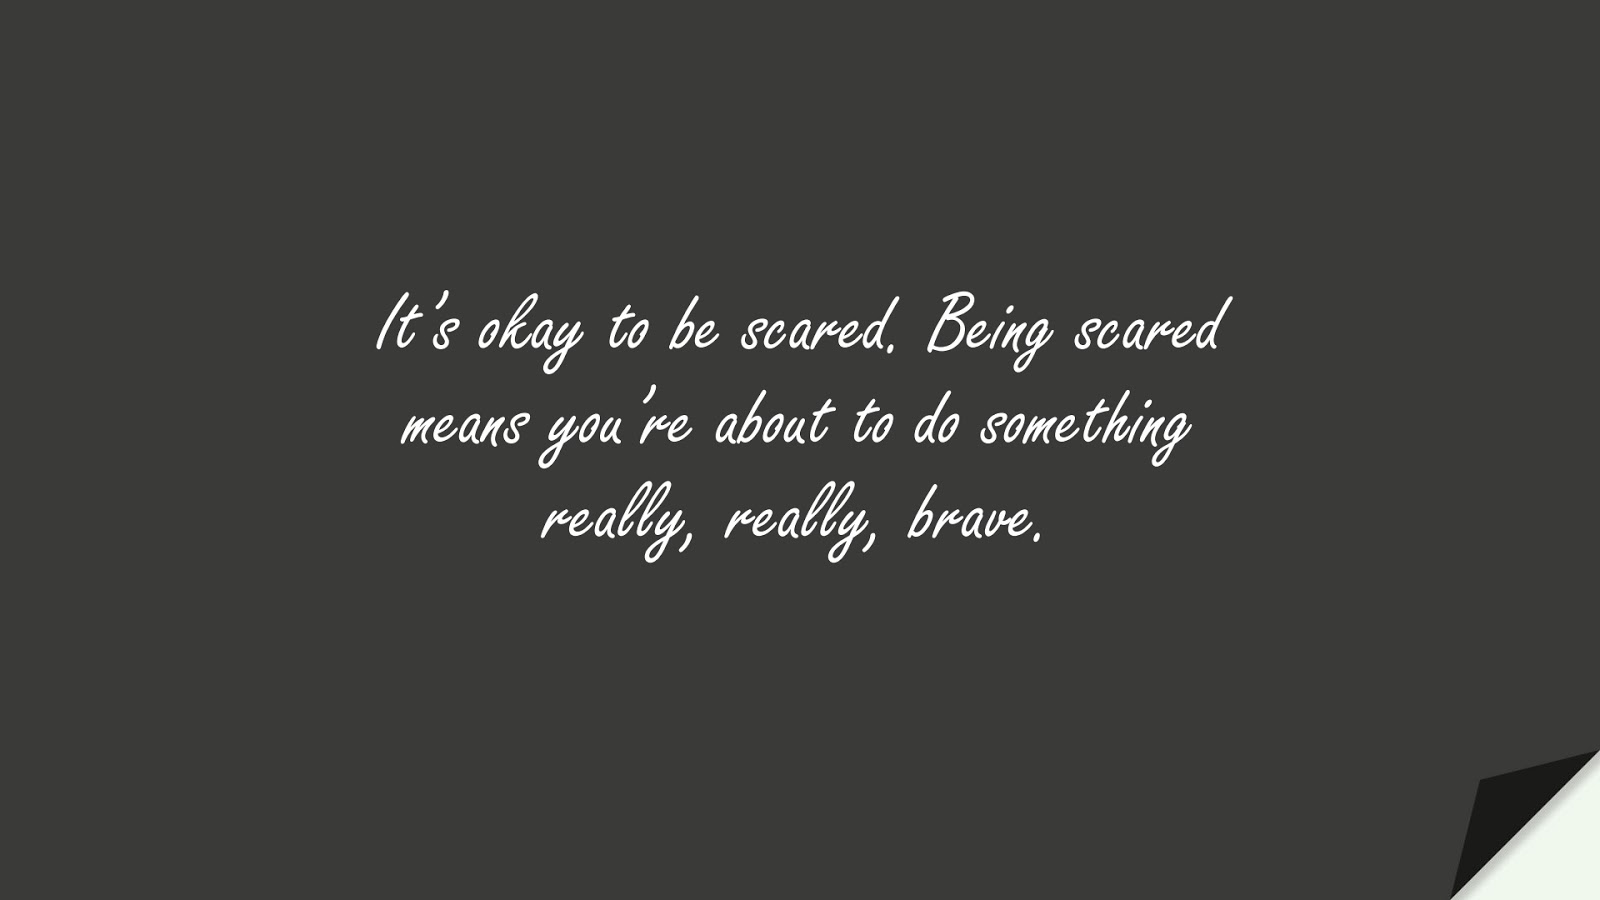 It's okay to be scared. Being scared means you're about to do something really, really, brave.FALSE